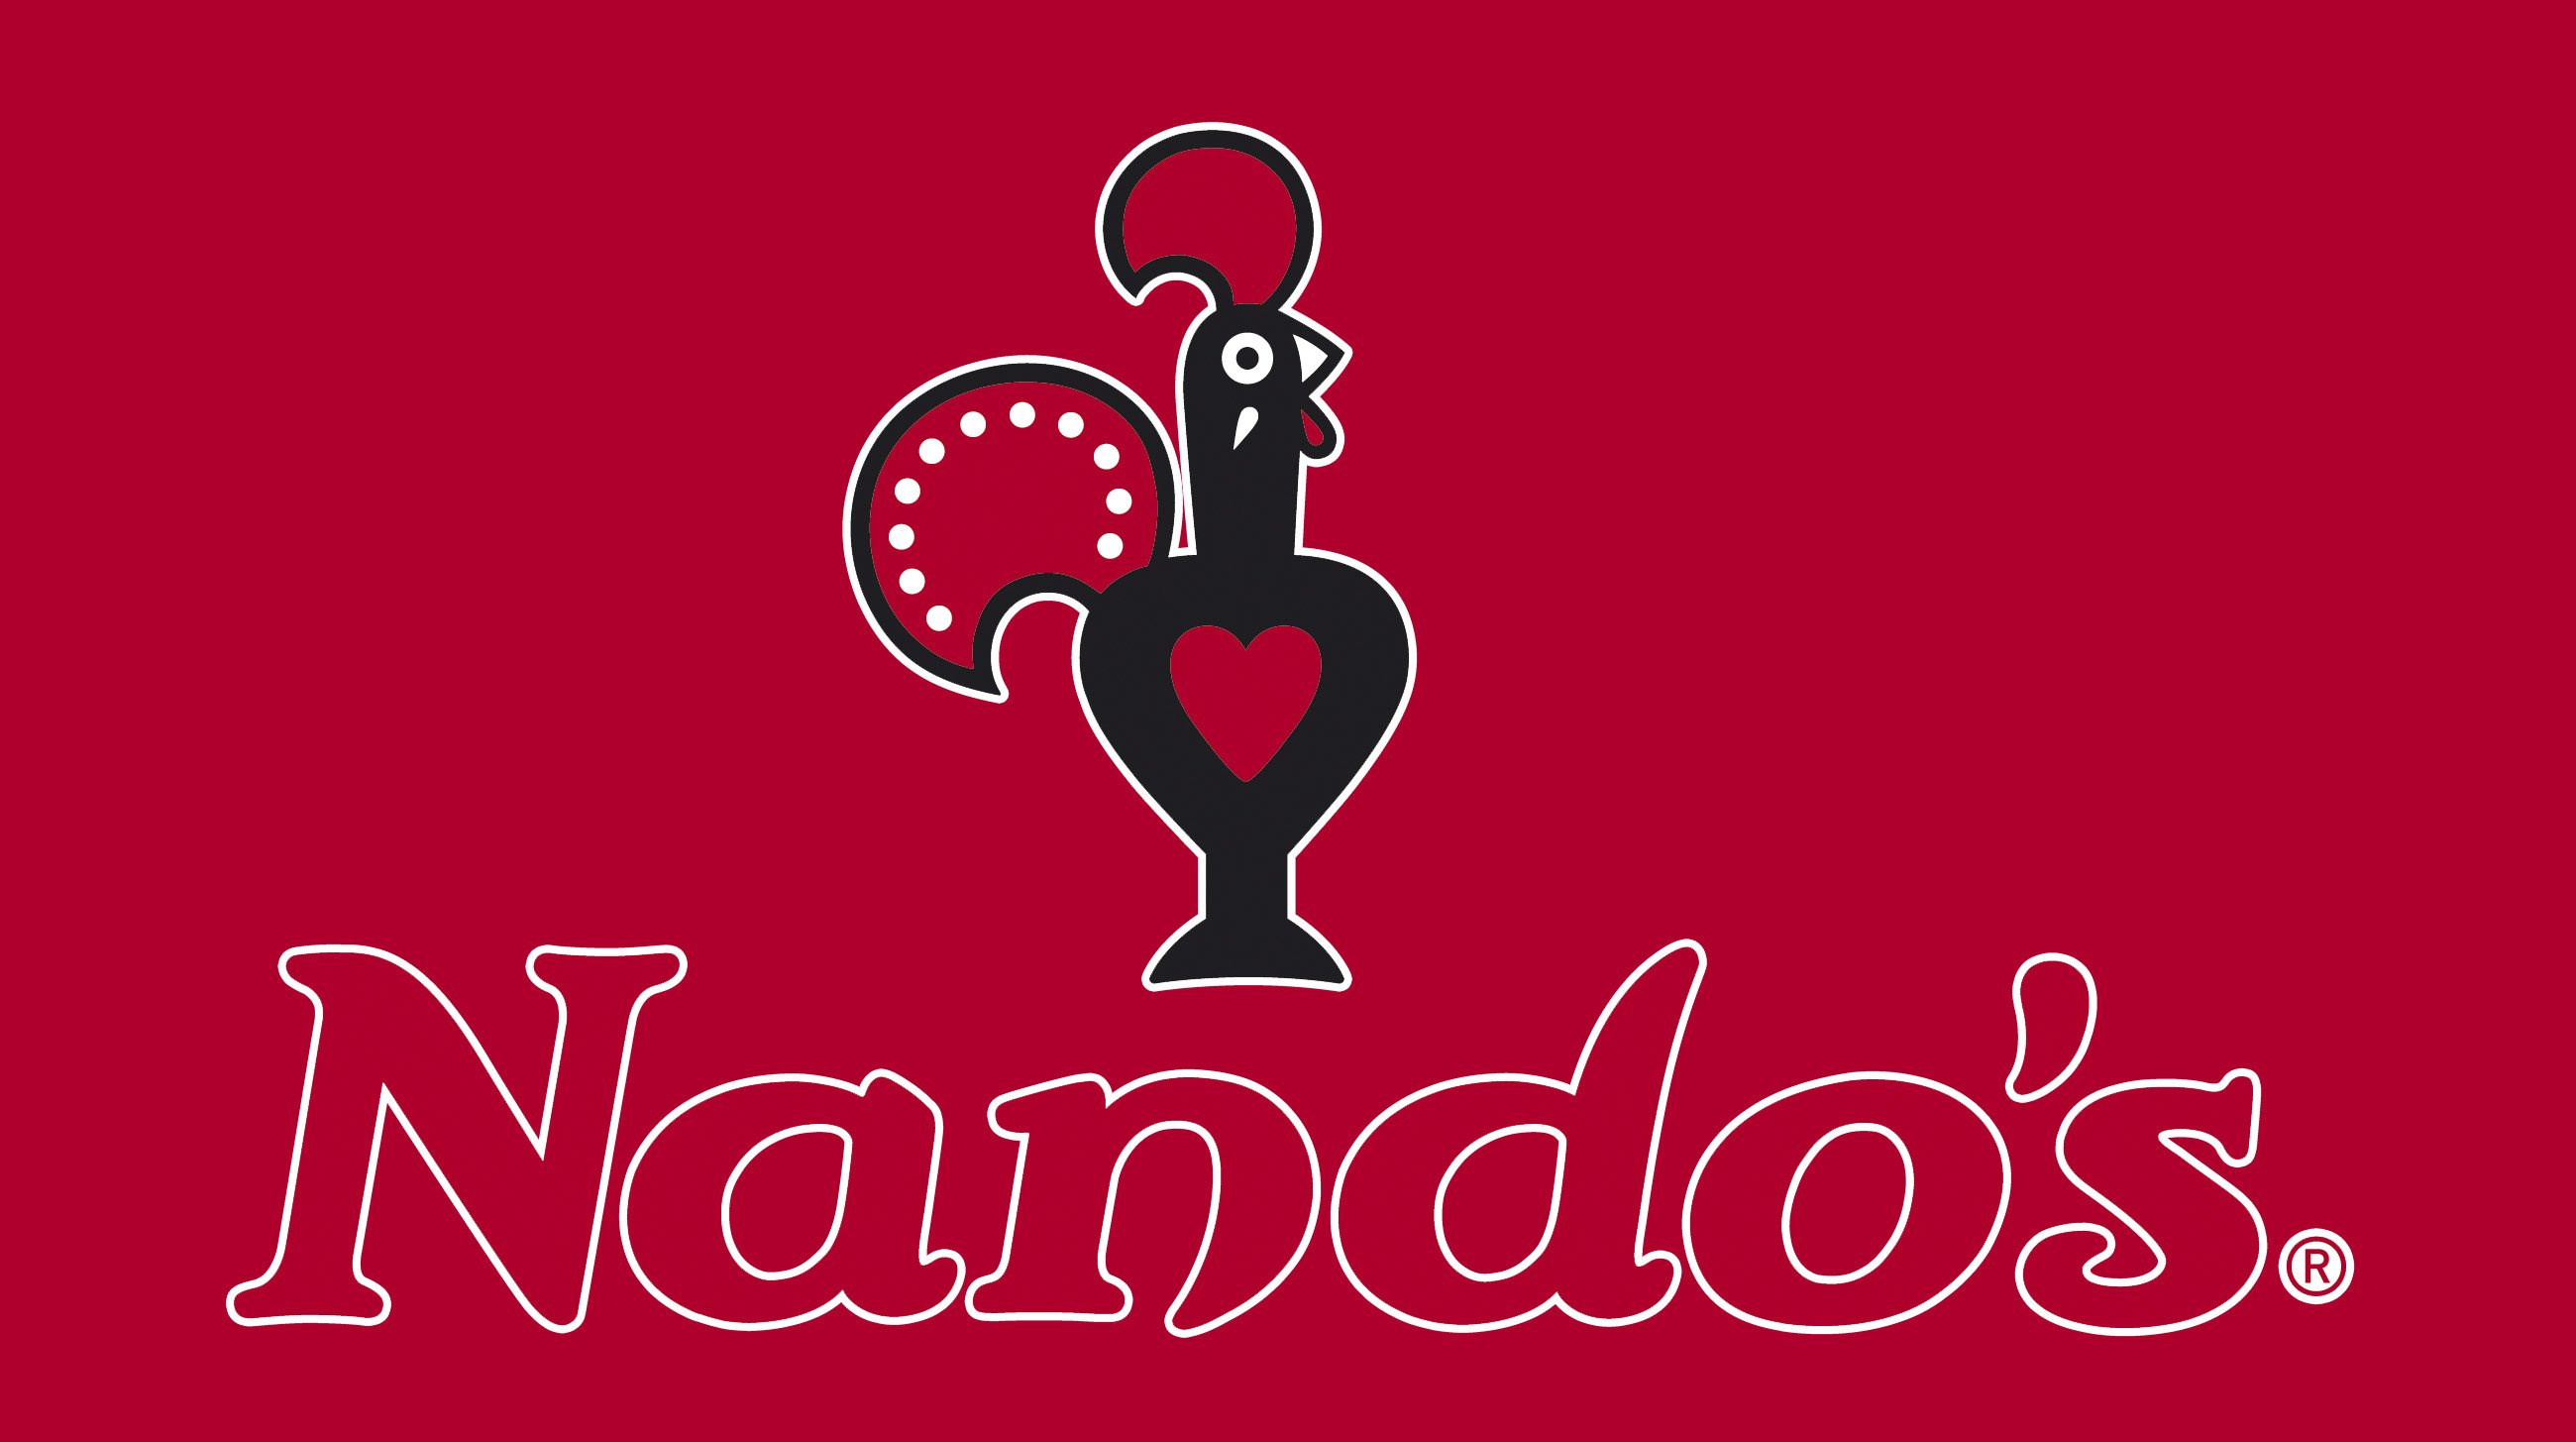 Color Nandos Logo 10 Things You Never Knew About Nando's